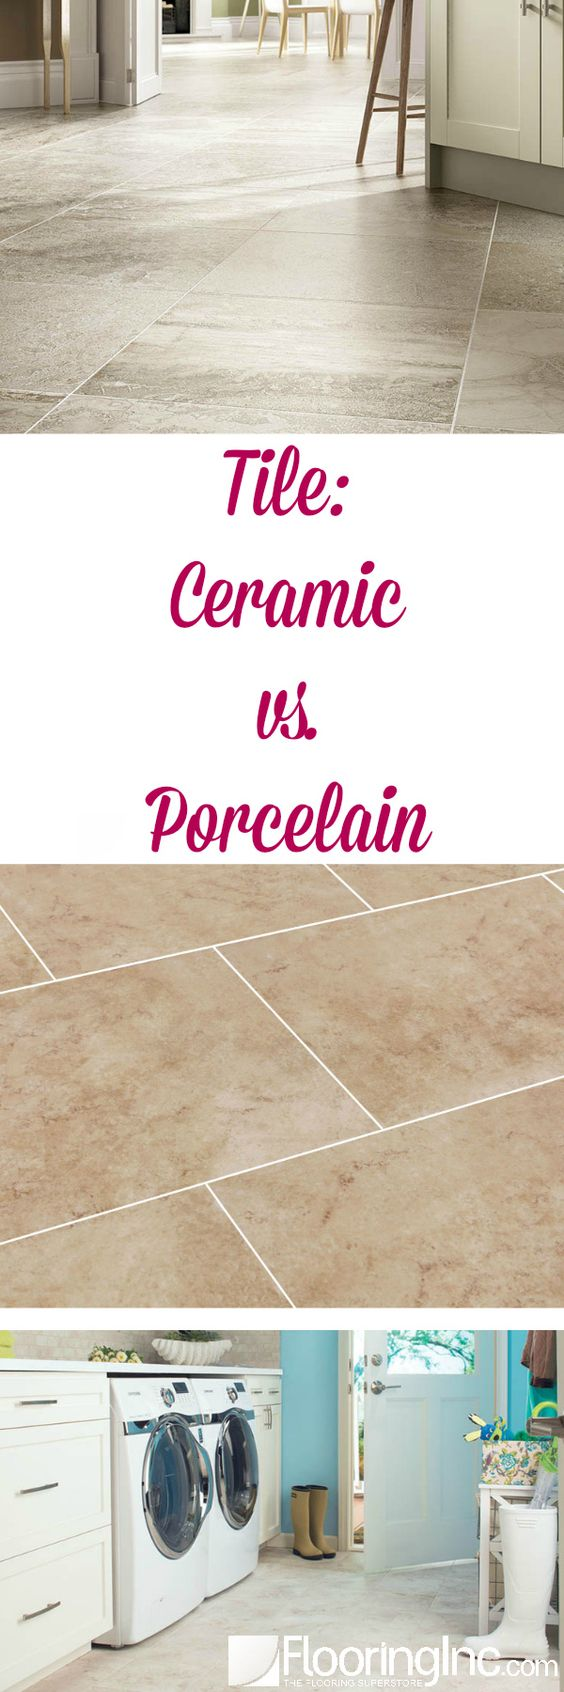 Porcelain Vs Ceramic Tile Learn The Difference Flooring Inc Porcelain Vs Ceramic Tile Porcelain Vs Ceramic Flooring